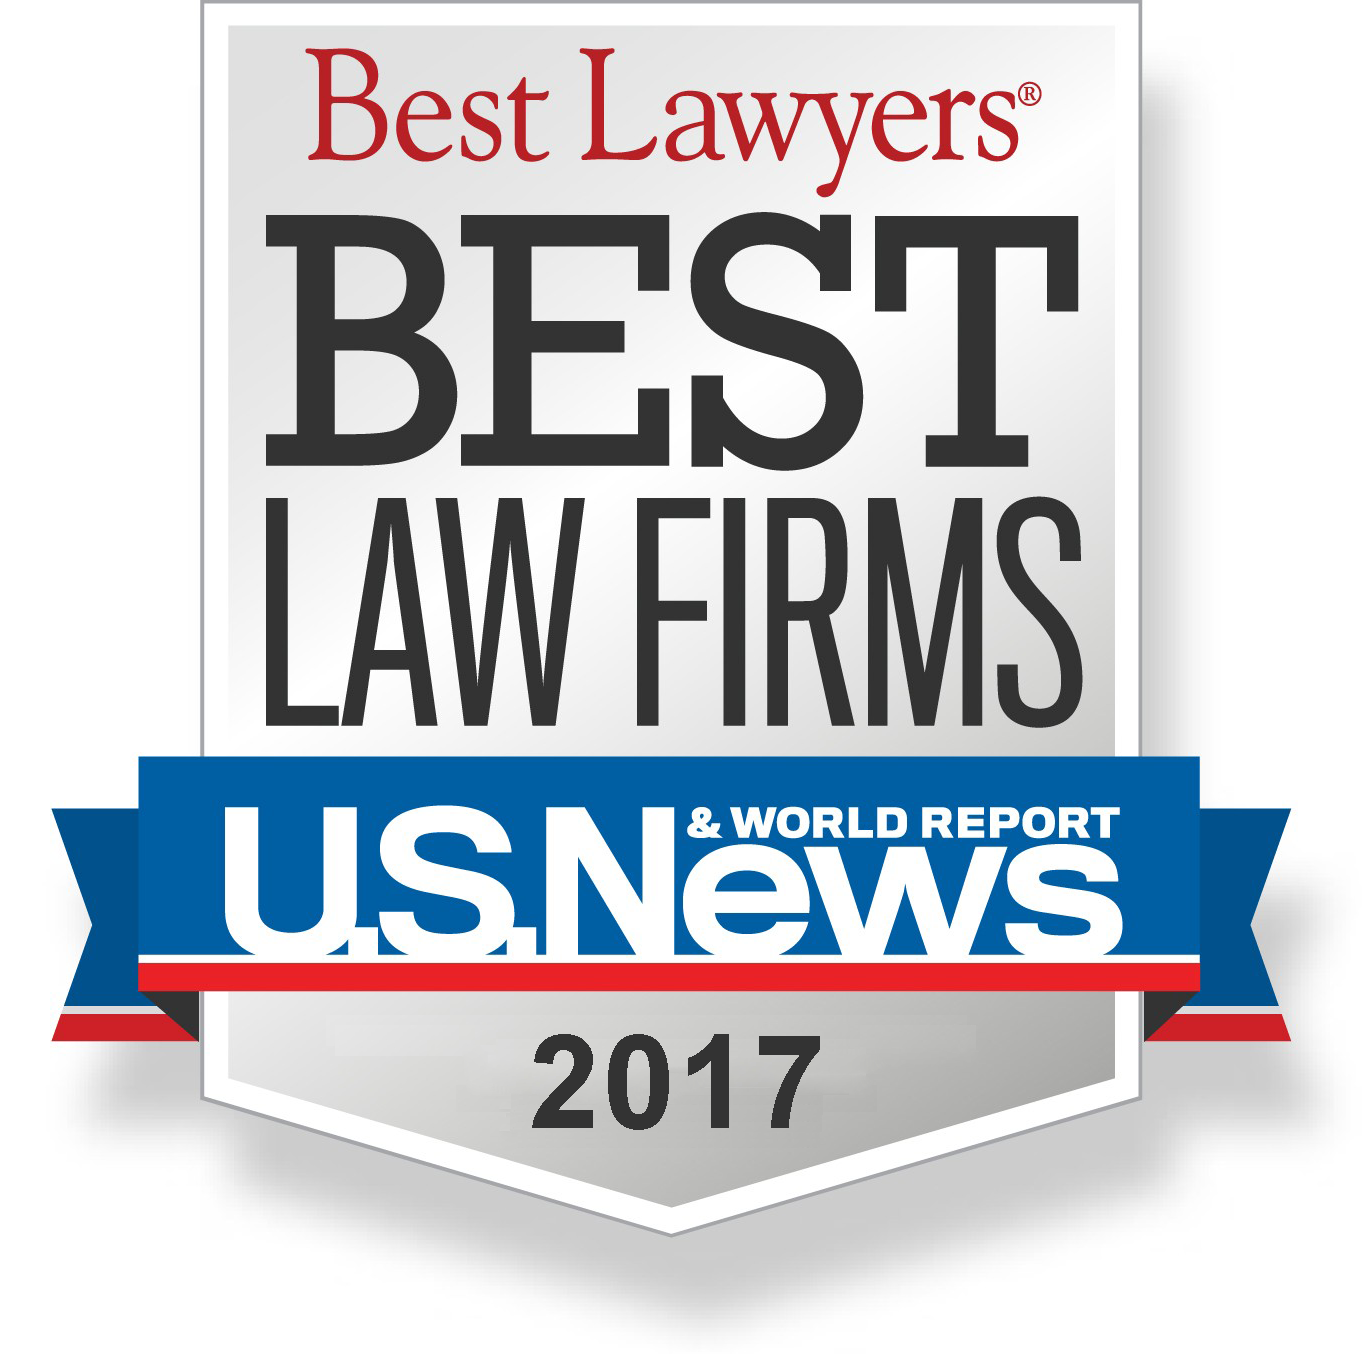 Best-Law-Firms-2017.png